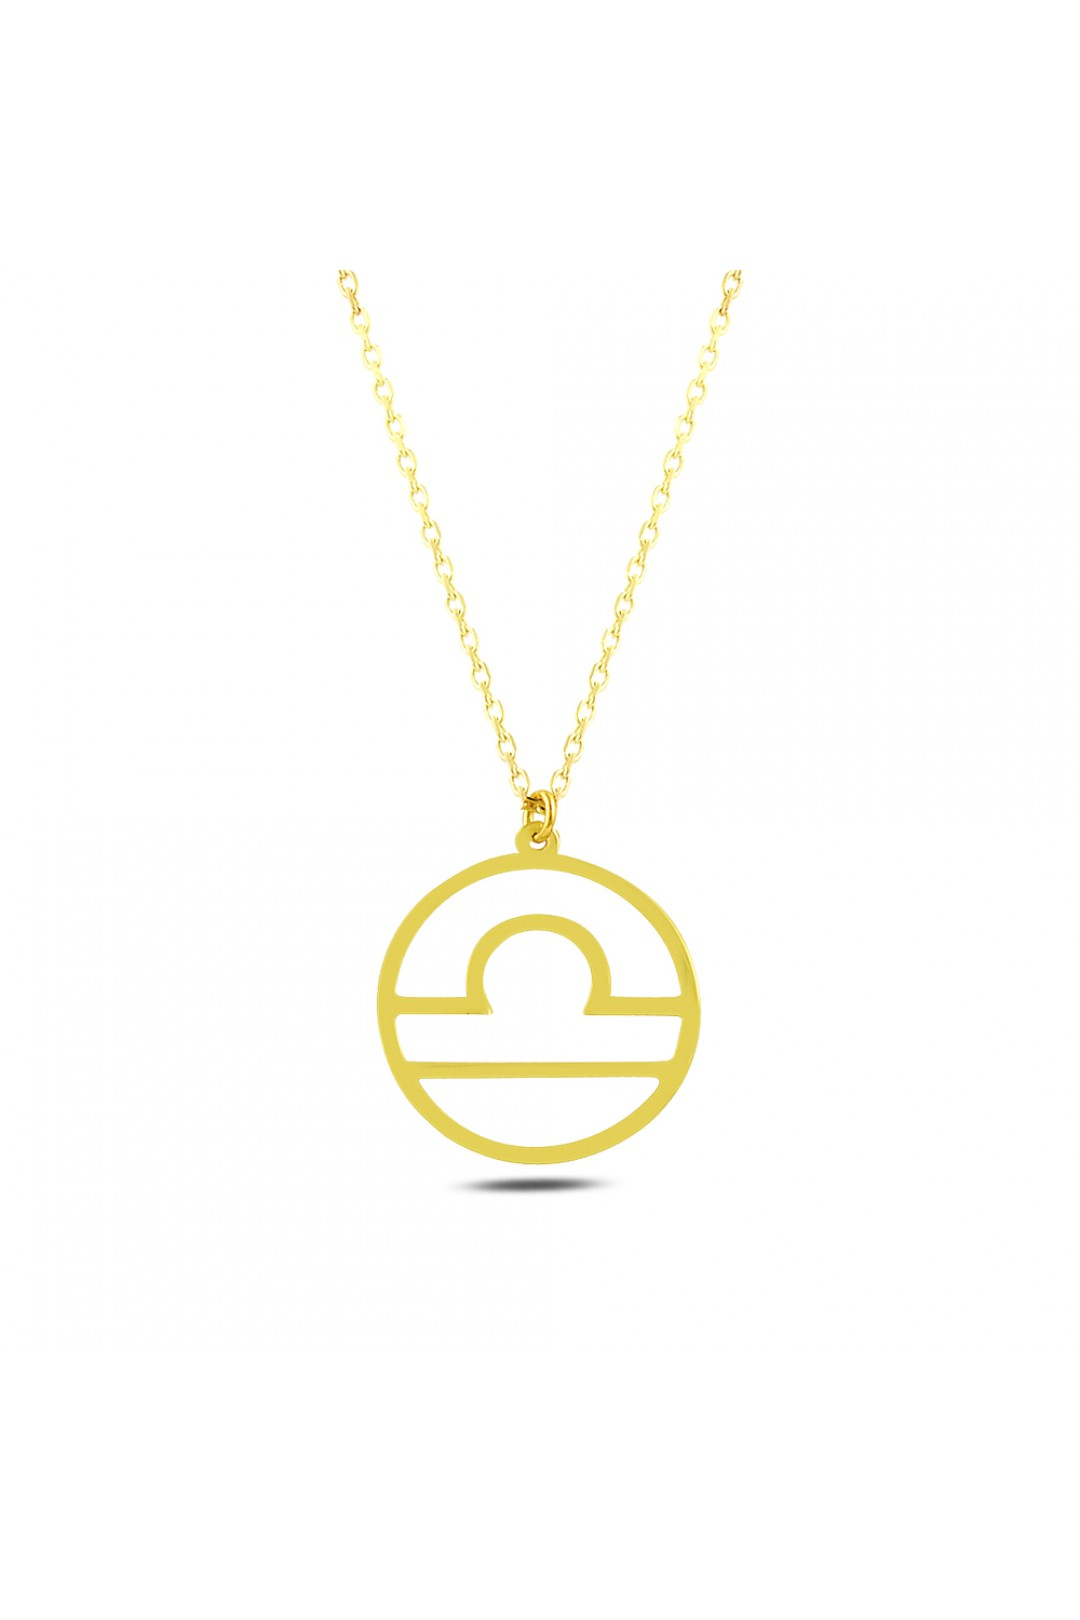 LIBRA SYMBOL NECKLACE